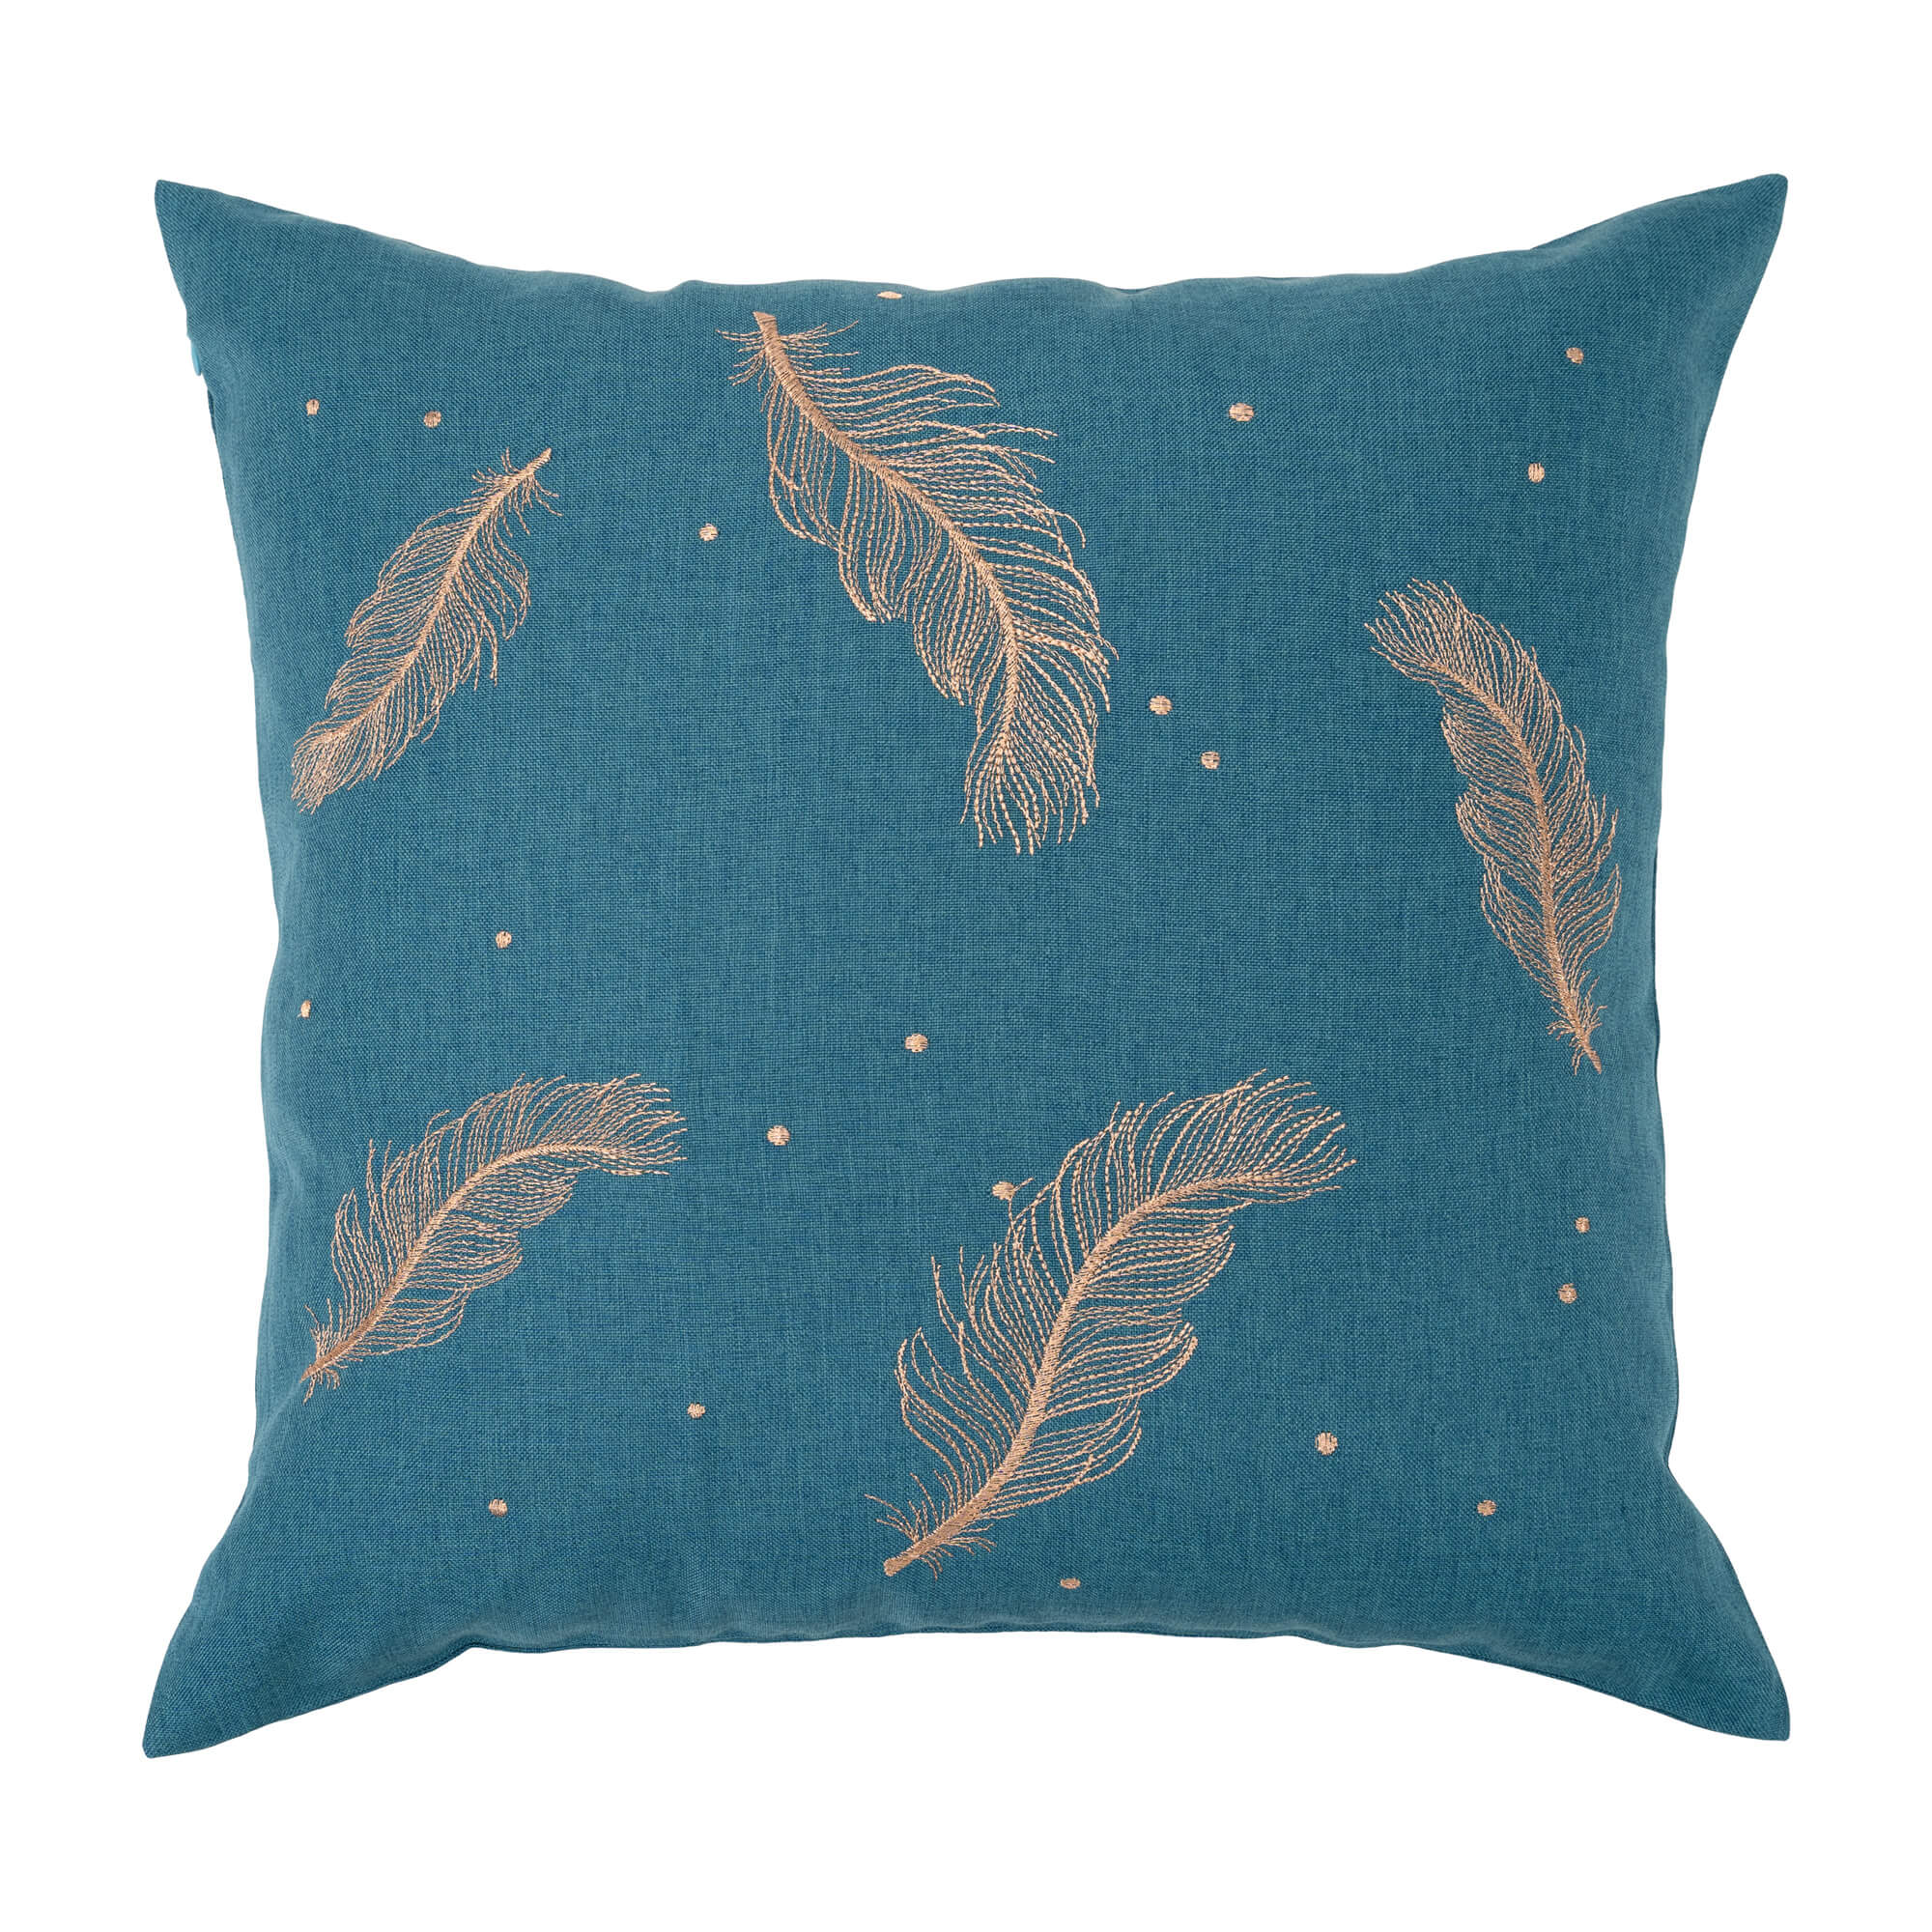 """Feathers Embroidery Cushion Cover/Throw Pillow. Easy Care Cation Fabric. 45x45cm/18x18"""" (Peacock Green And Gold)"""